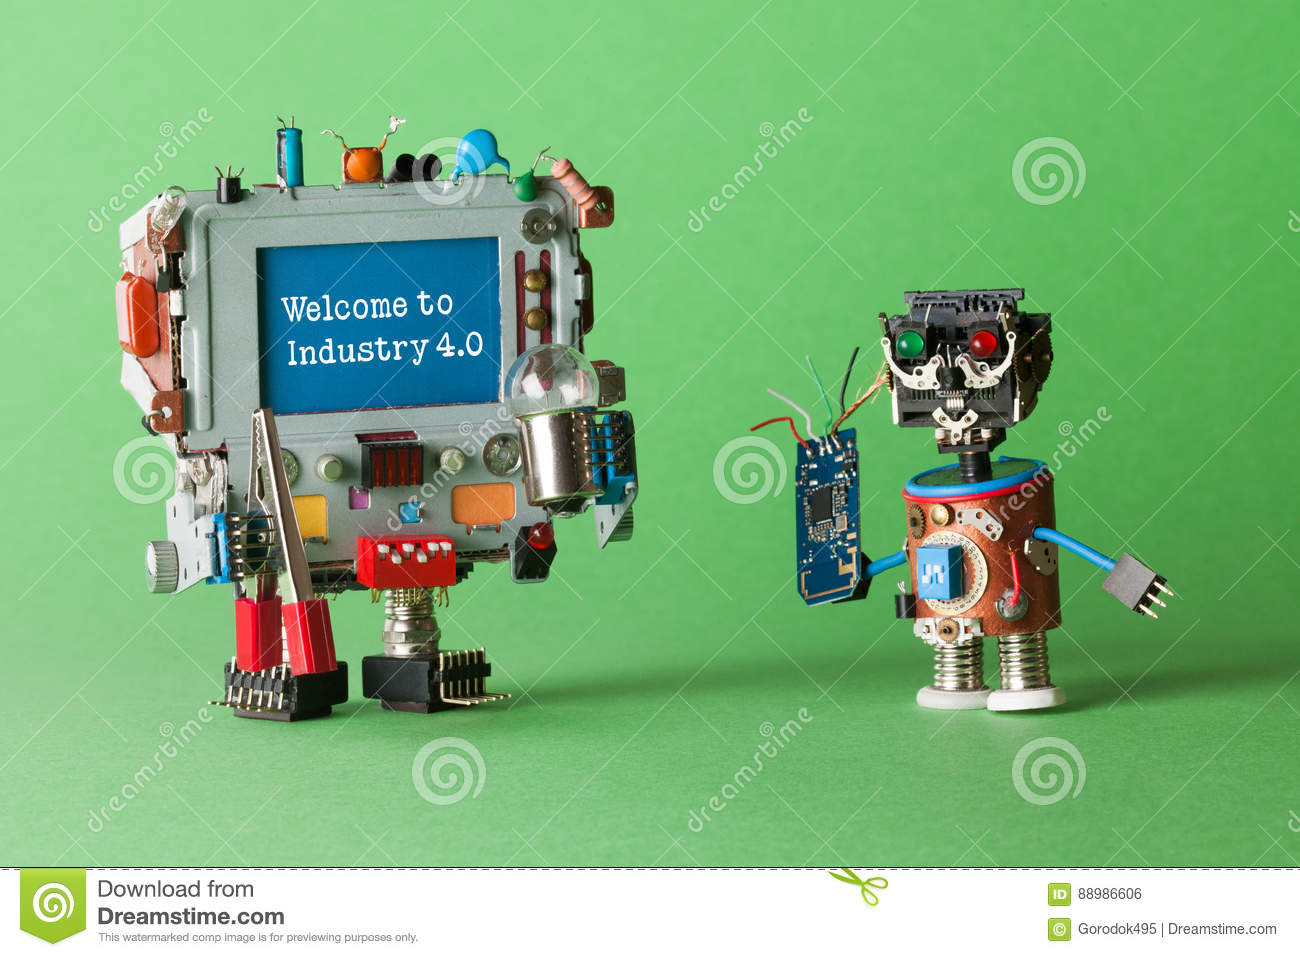 Welcome to Industry 4 0 robotic cyber systems, smart technology and automation process. Abstract electronic toy with